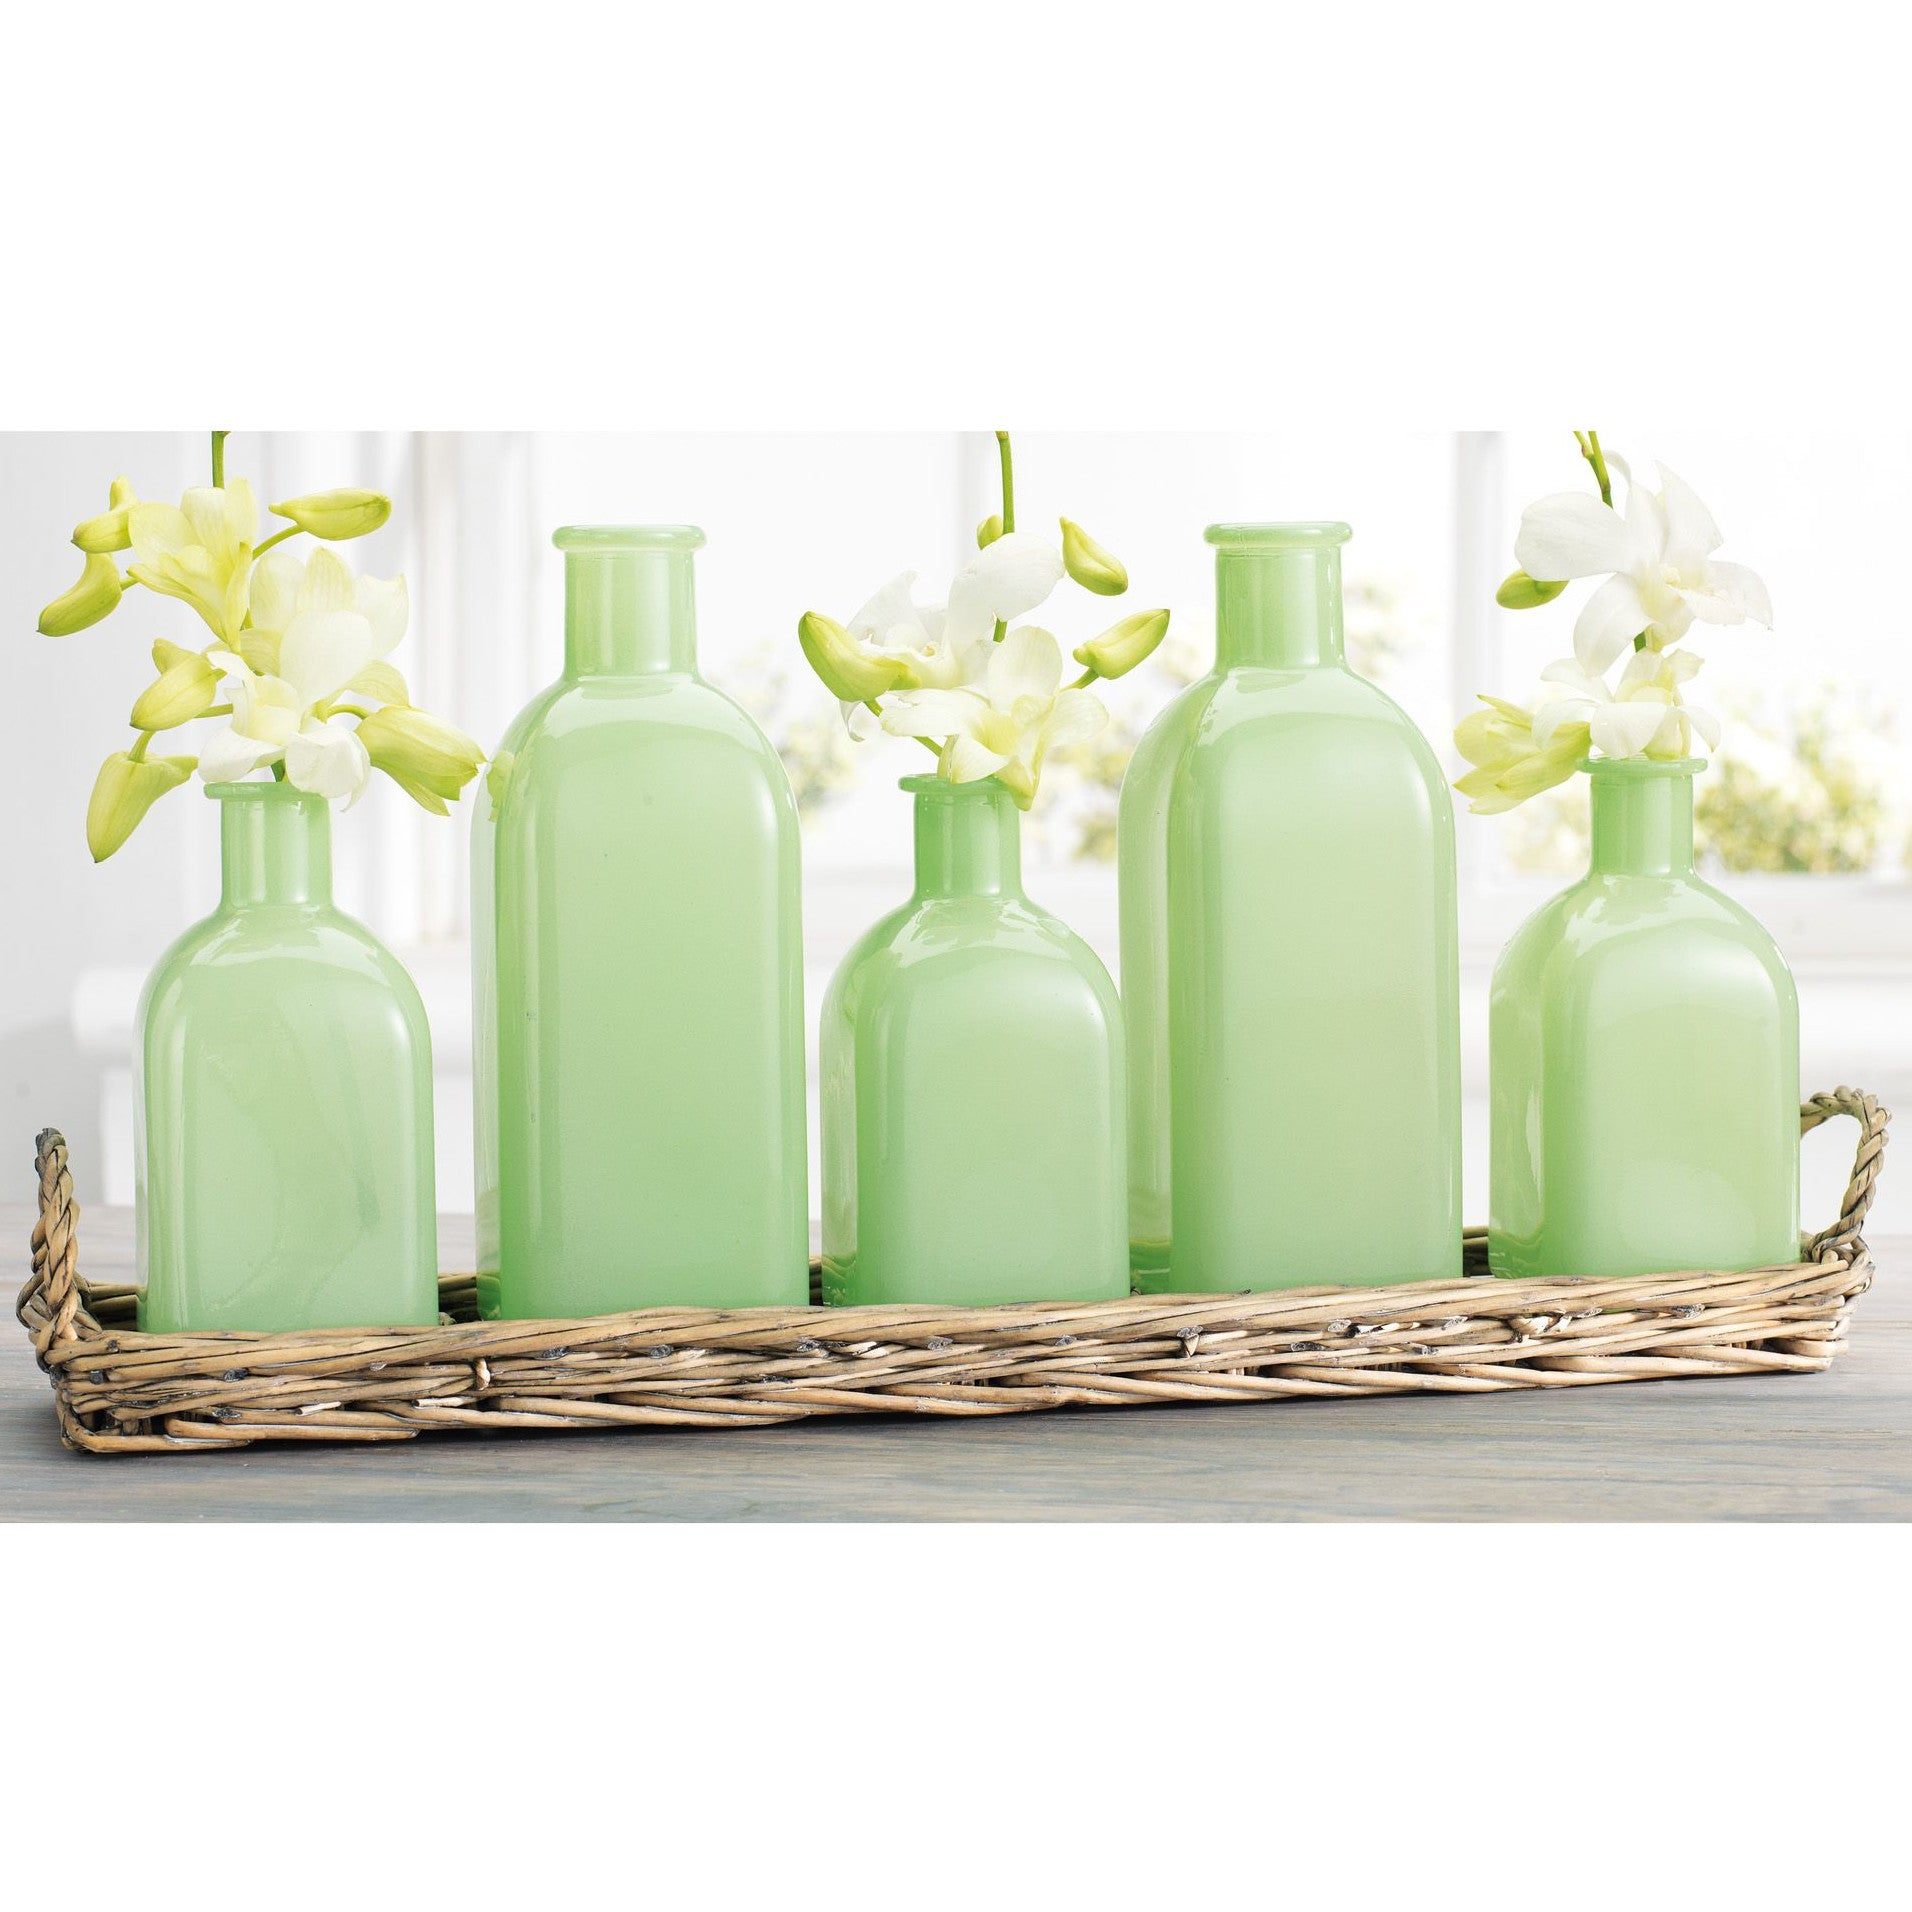 Wicker Basket Tray With Jade Bottles-Decor-A Cottage in the City